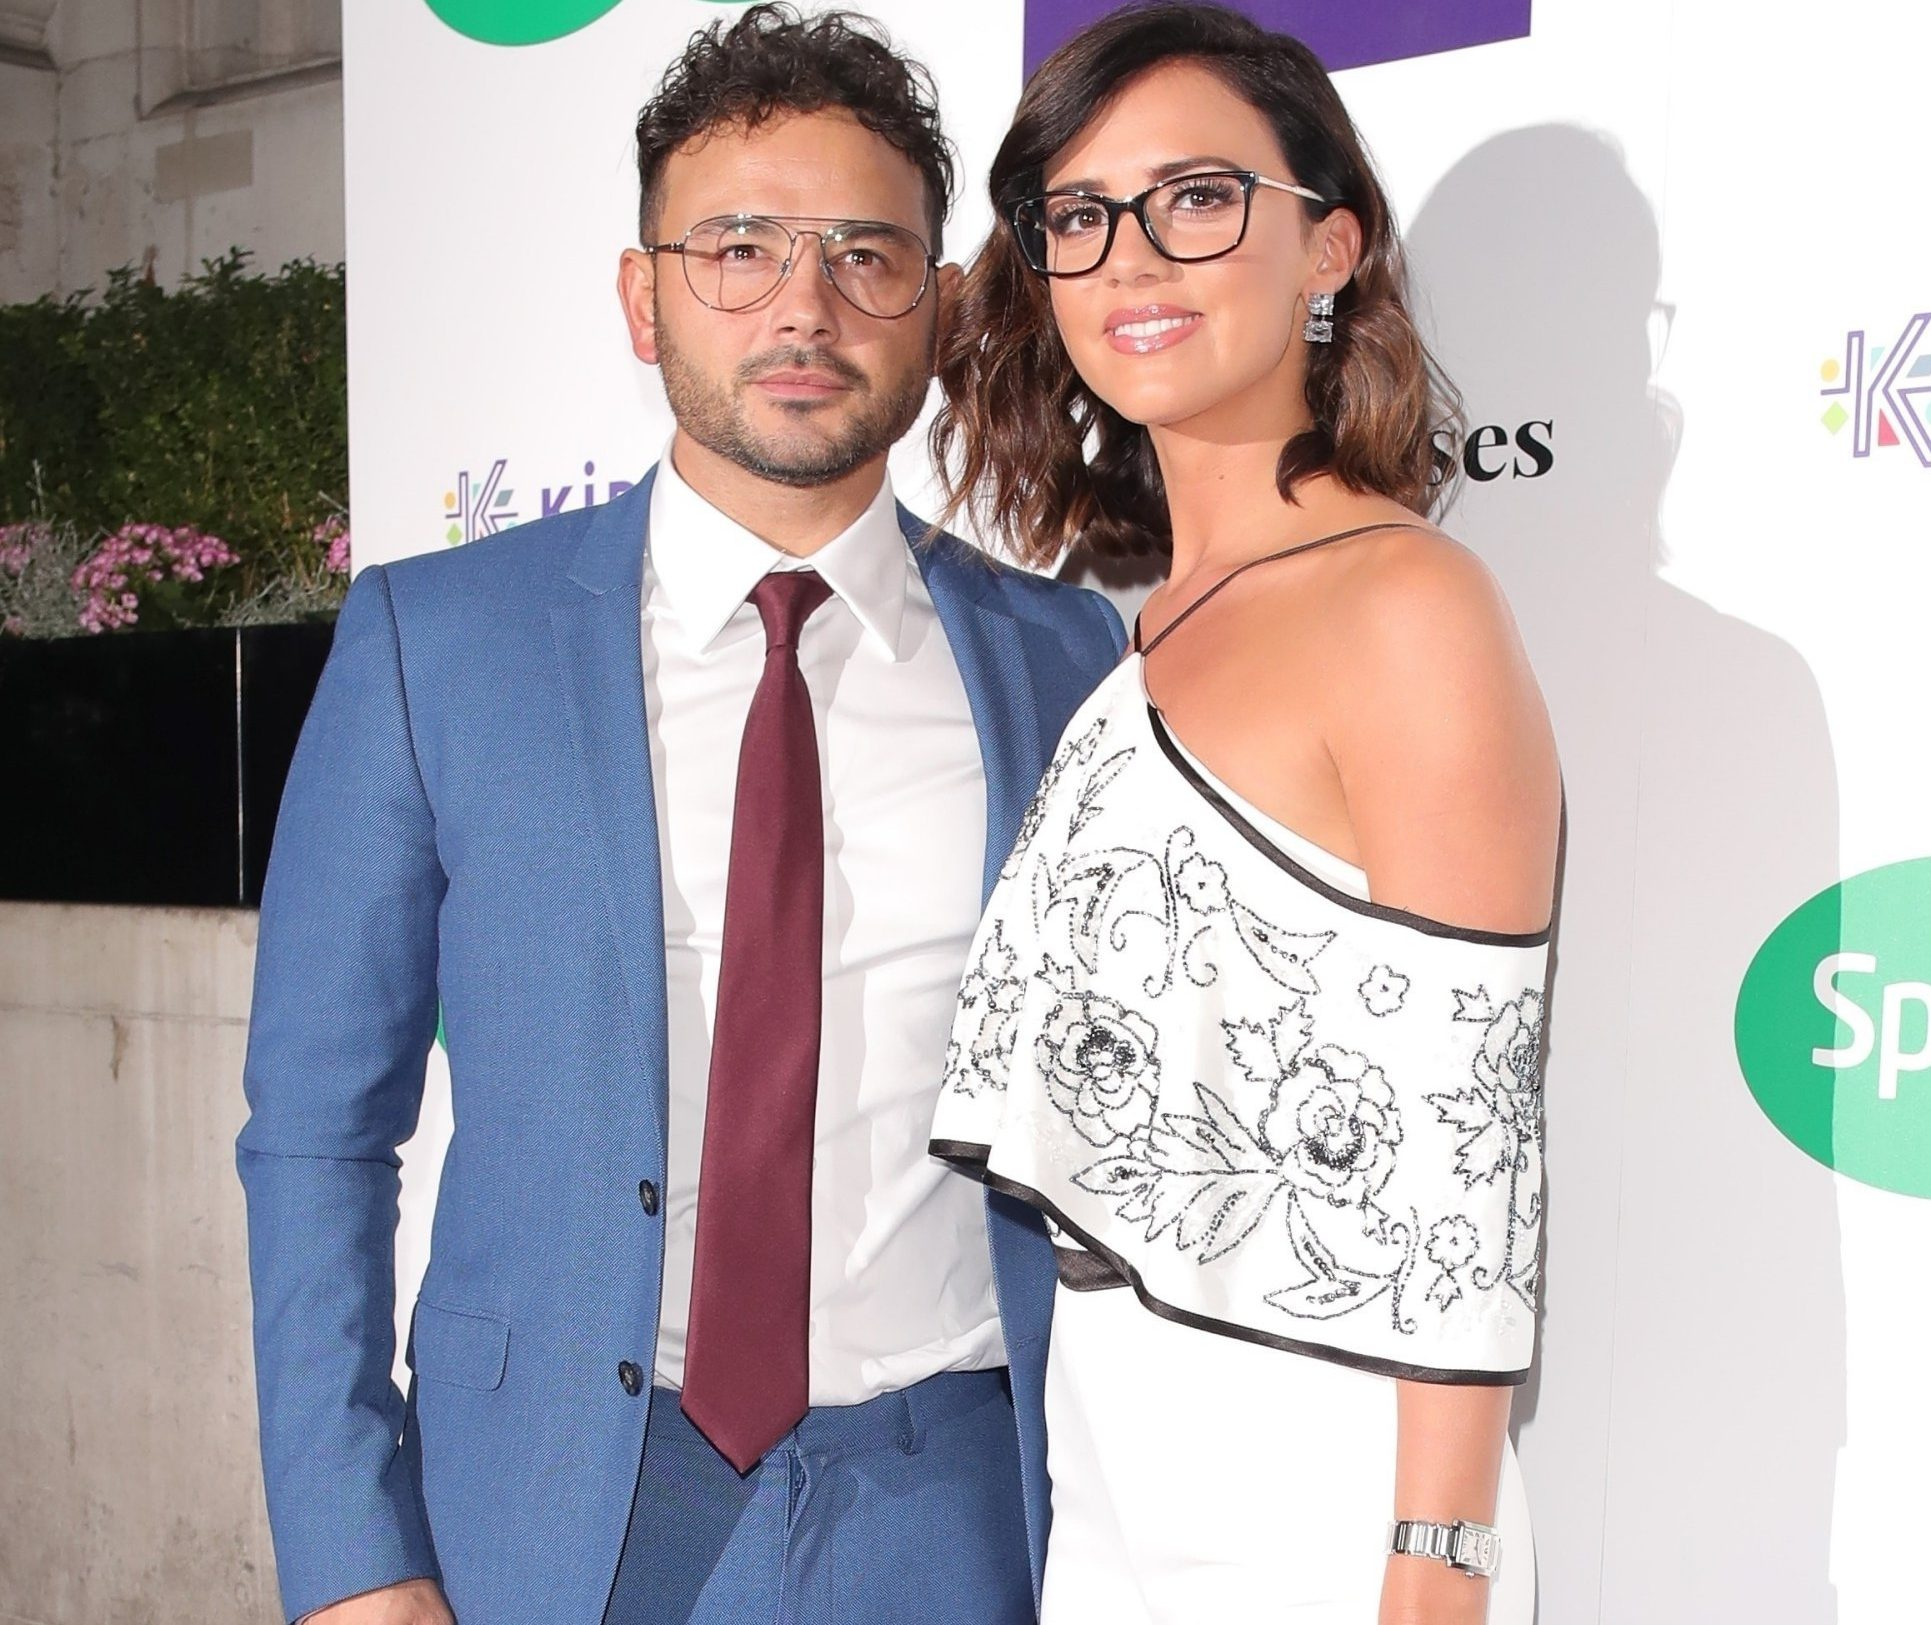 Ryan Thomas and Lucy Mecklenburgh spark engagement rumours days after discussing proposal plans